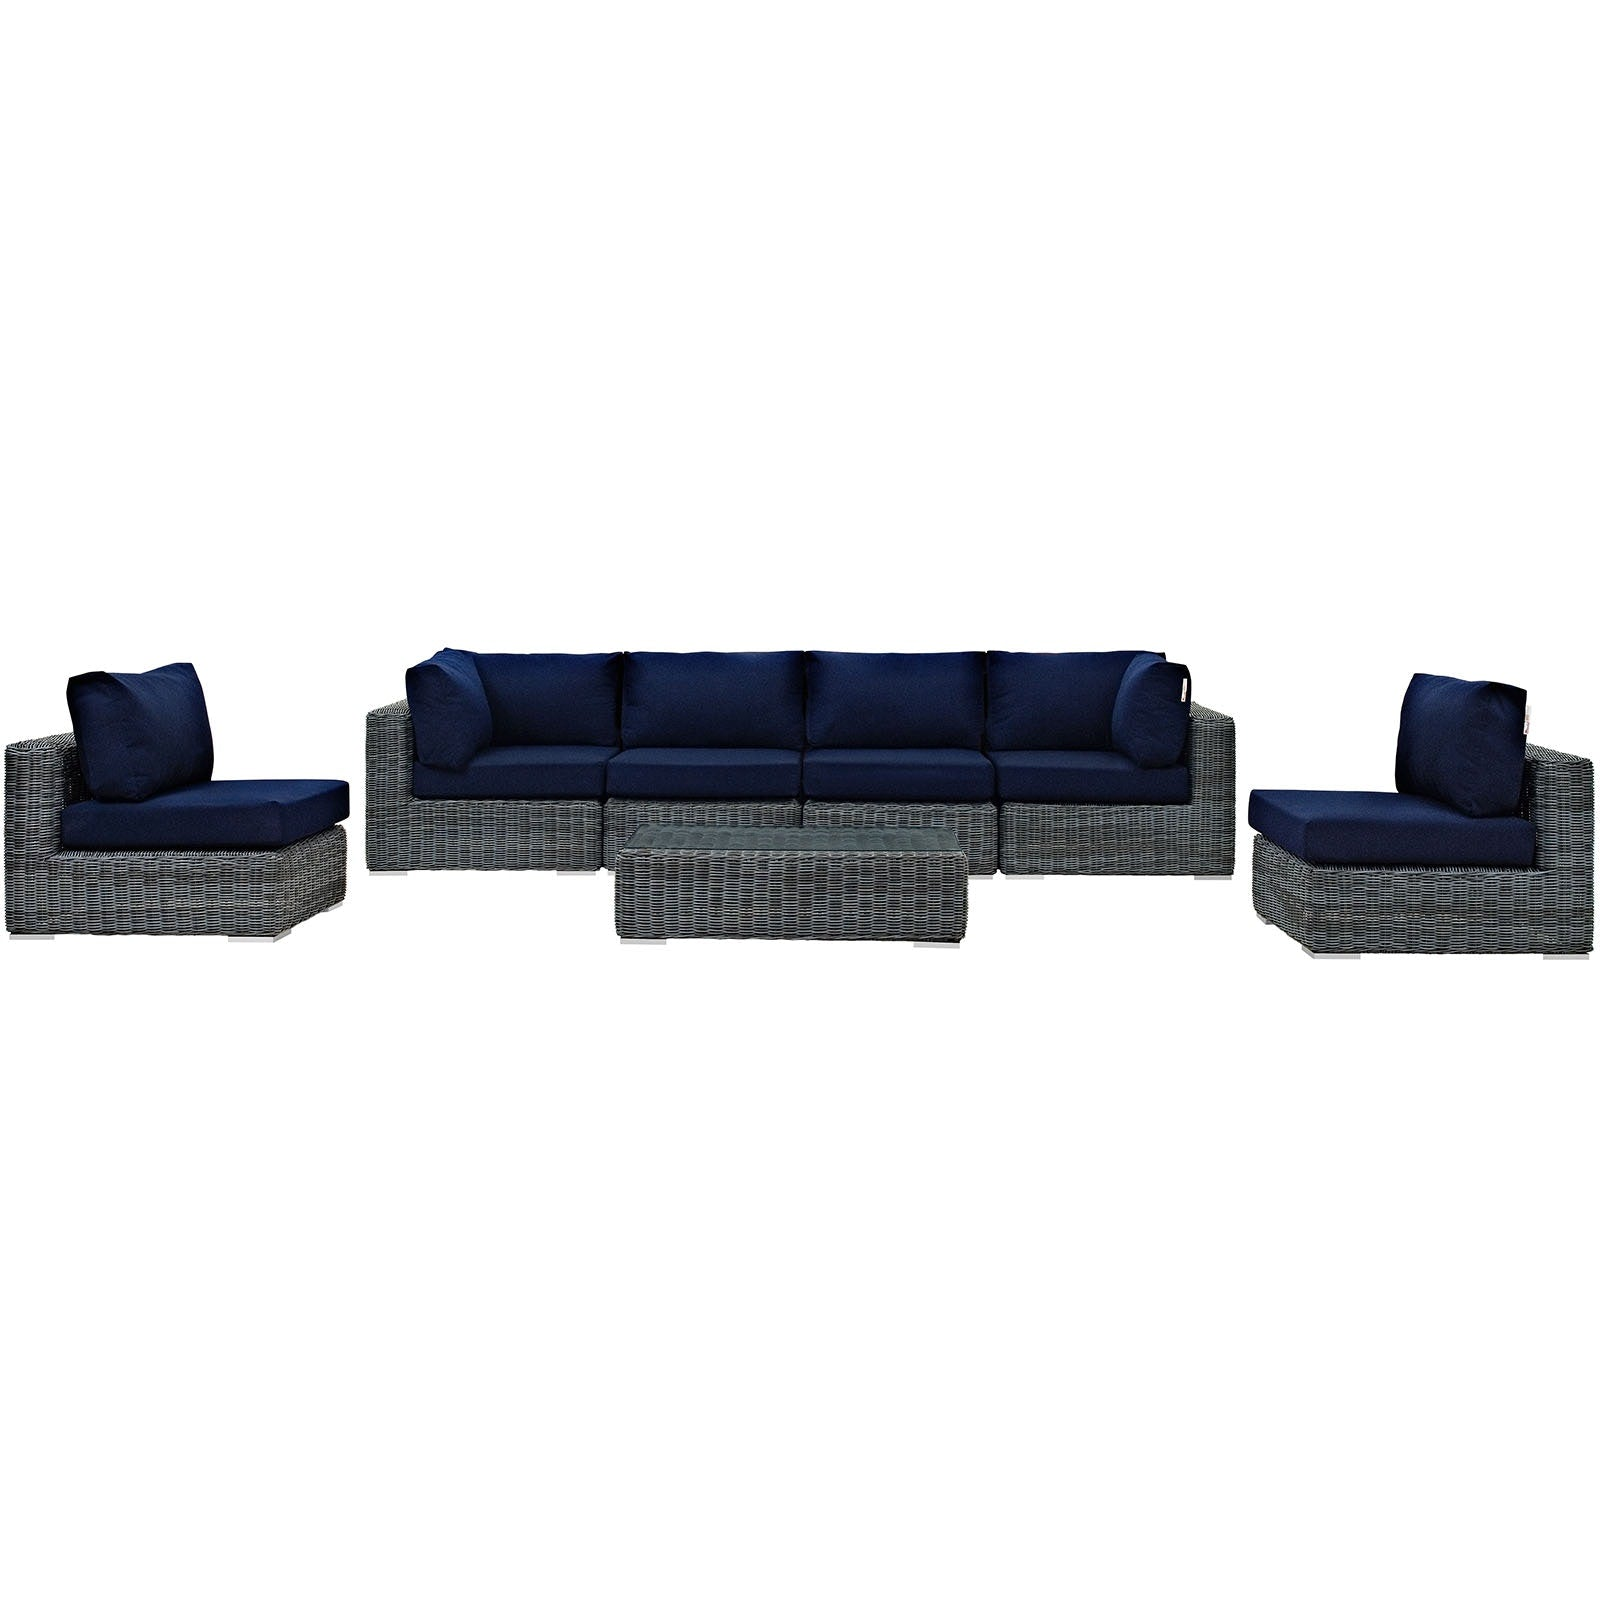 Summon 7 Piece Outdoor Patio Sunbrella® Sectional Set - Canvas Navy